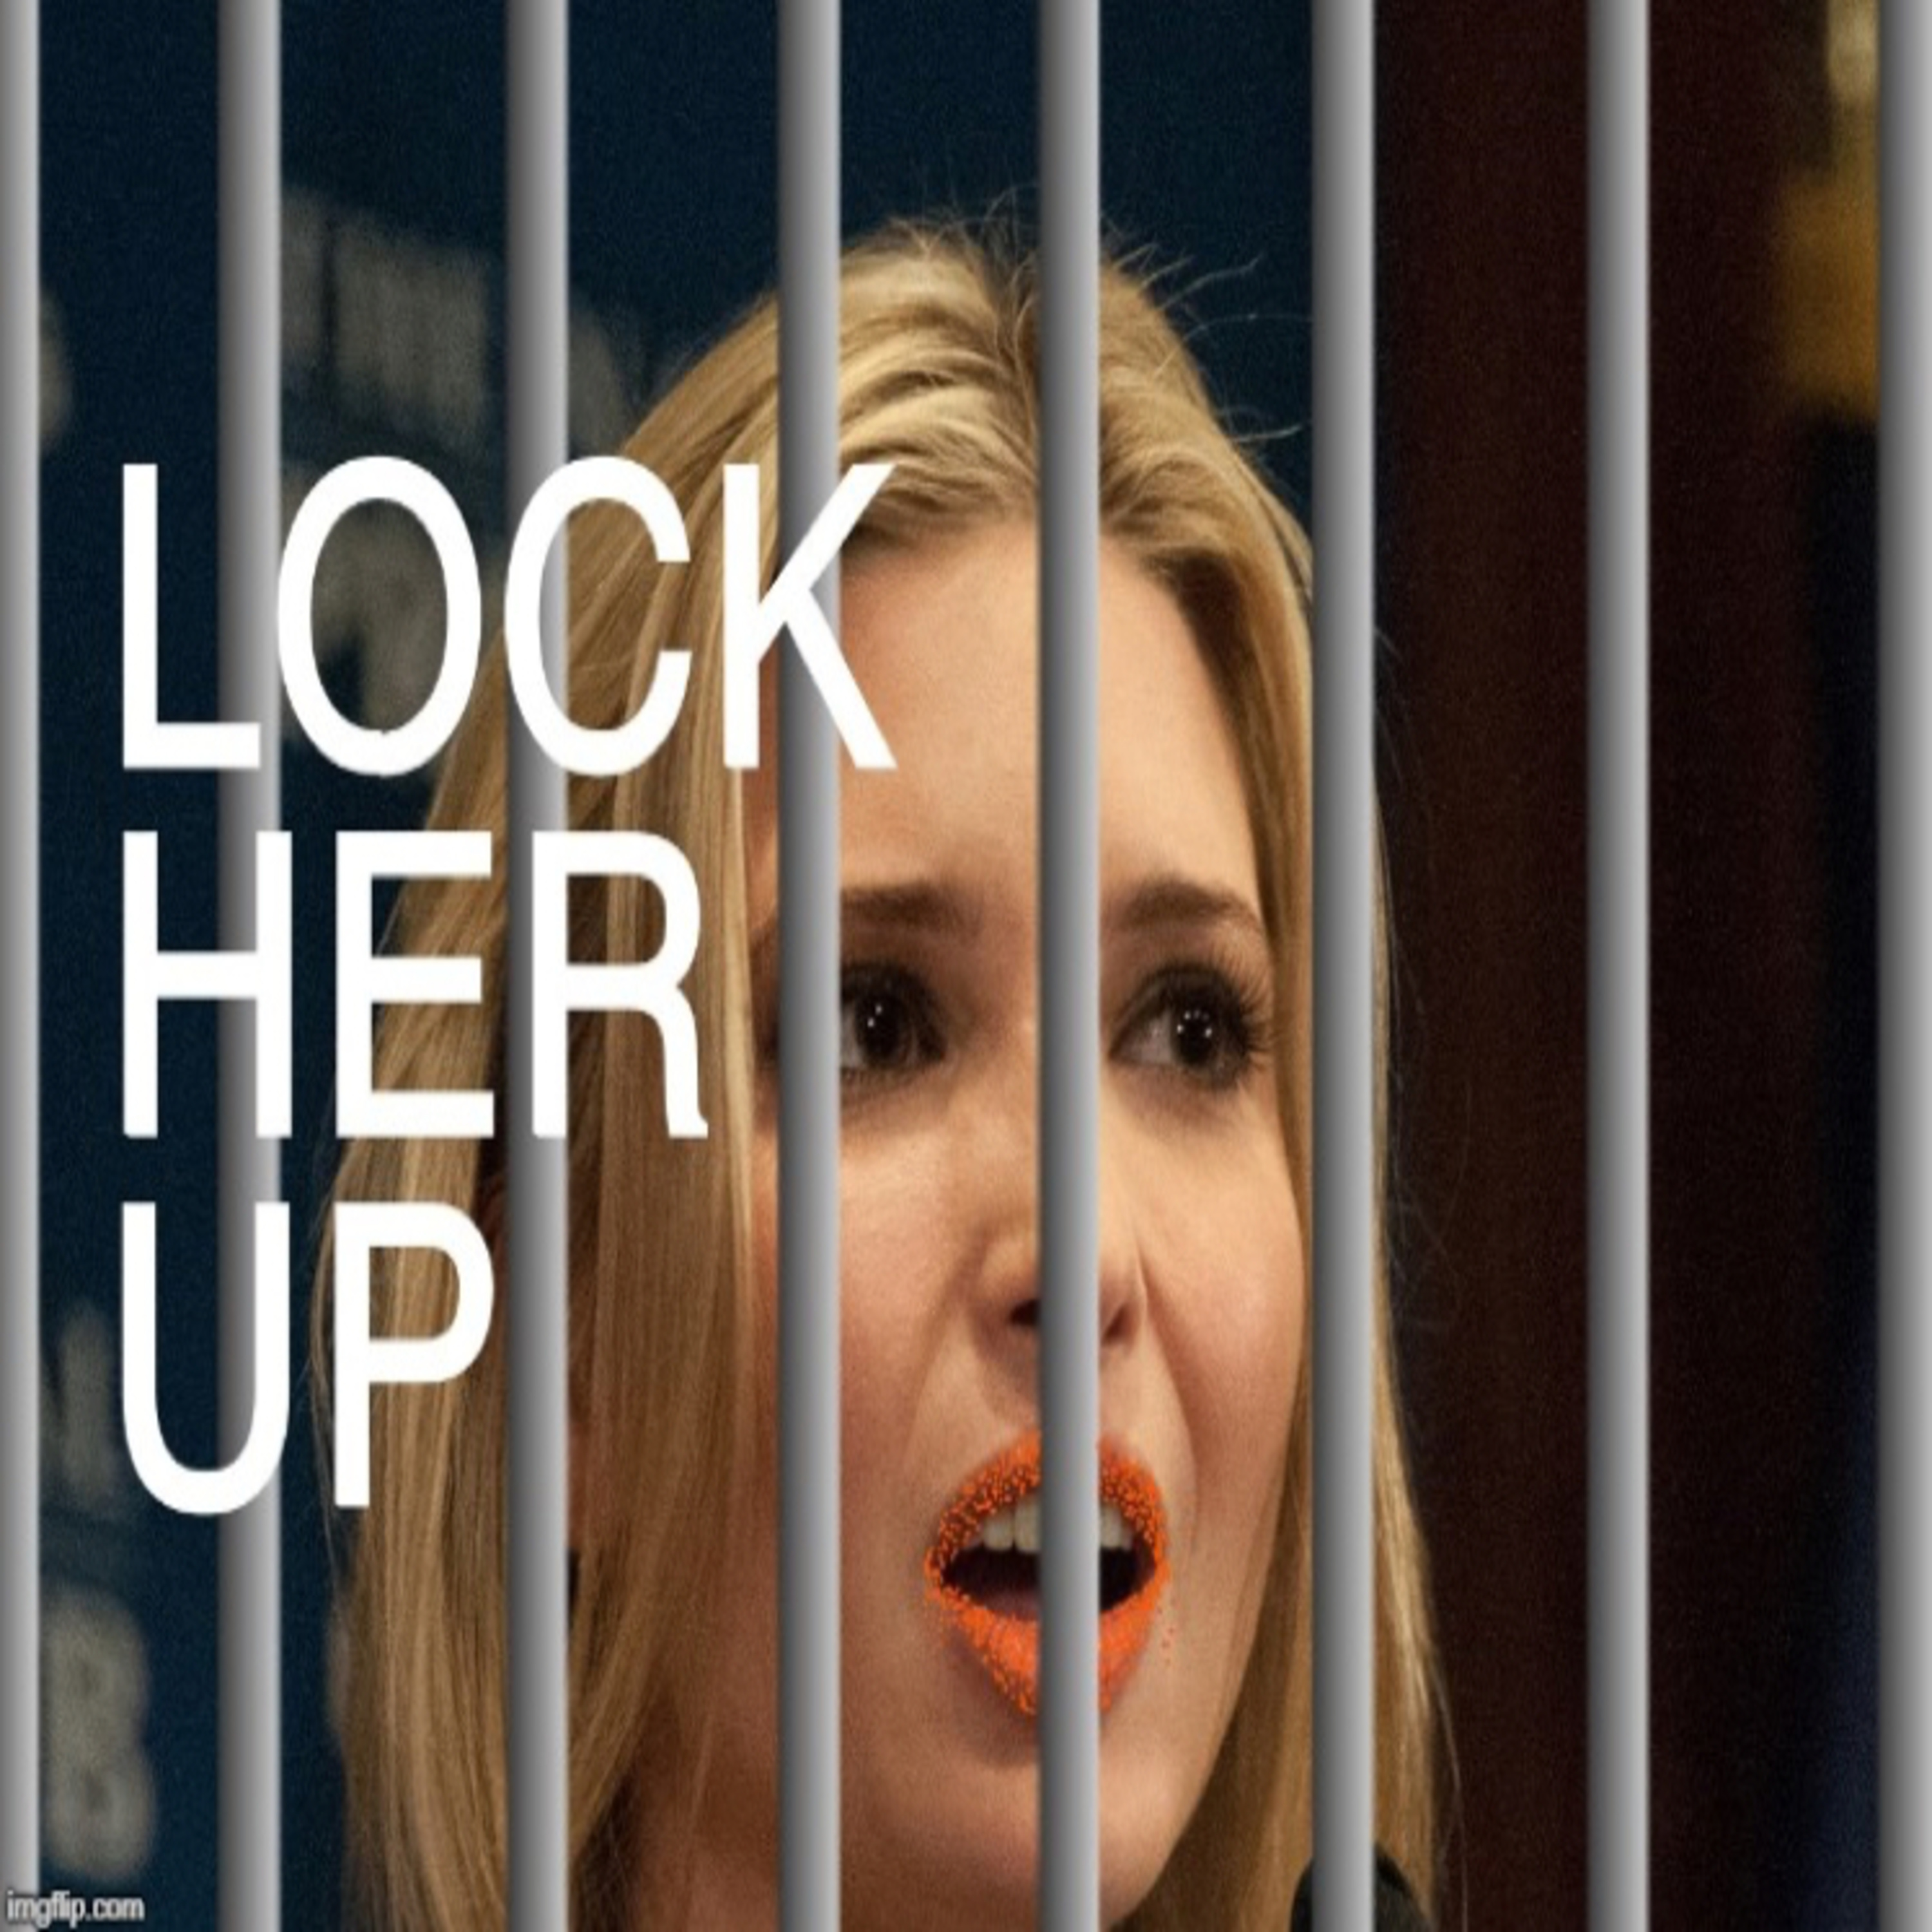 S2:E8 LOCK HER UP!